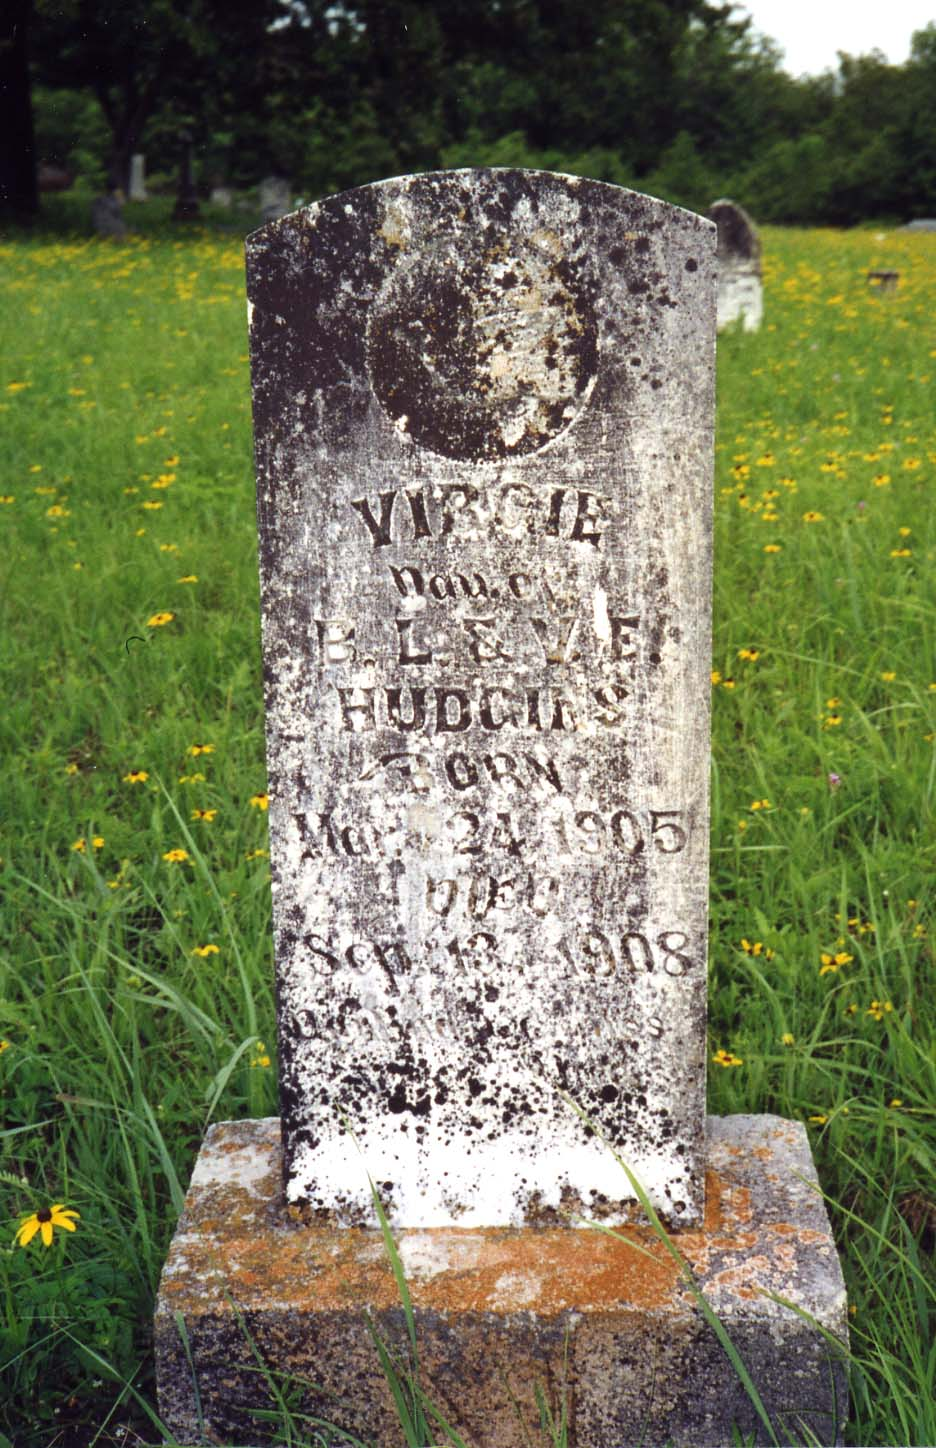 Virgie Dau of B. L. and V. E. Hudgins  Born Mar 24, 1905 Died Sept 13, 1908 Darling we miss you